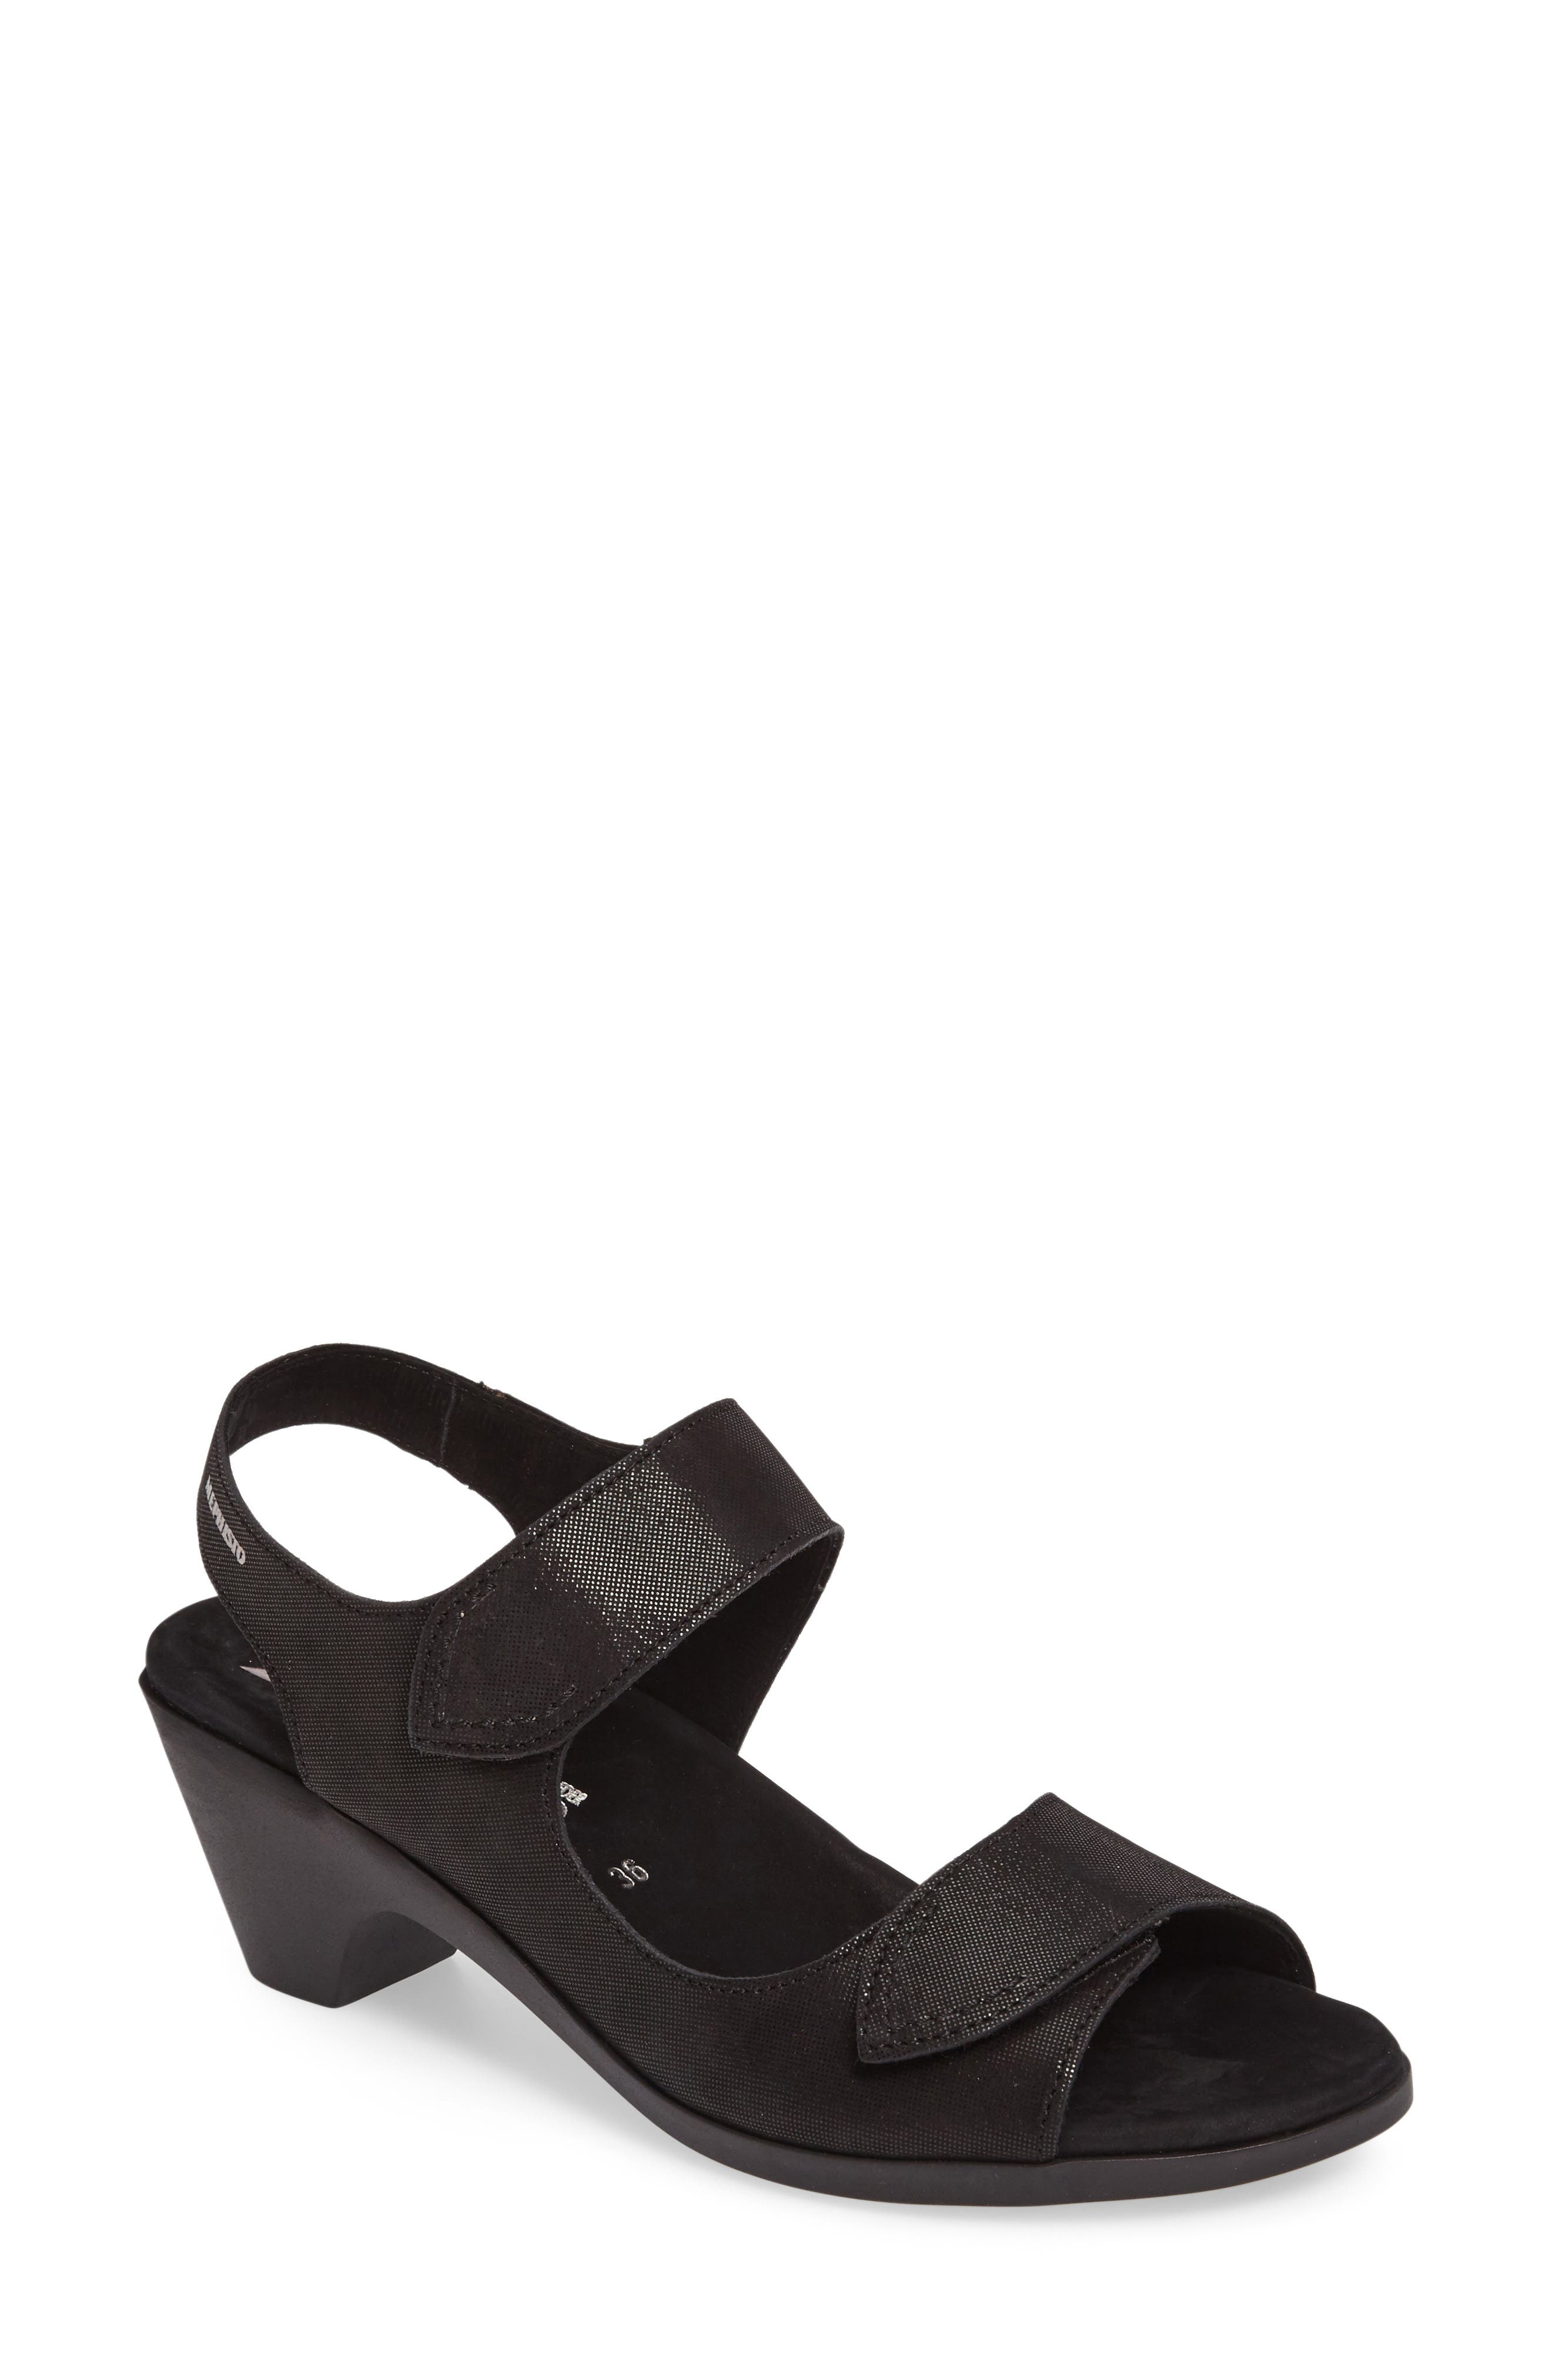 Cecila Sandal,                         Main,                         color,